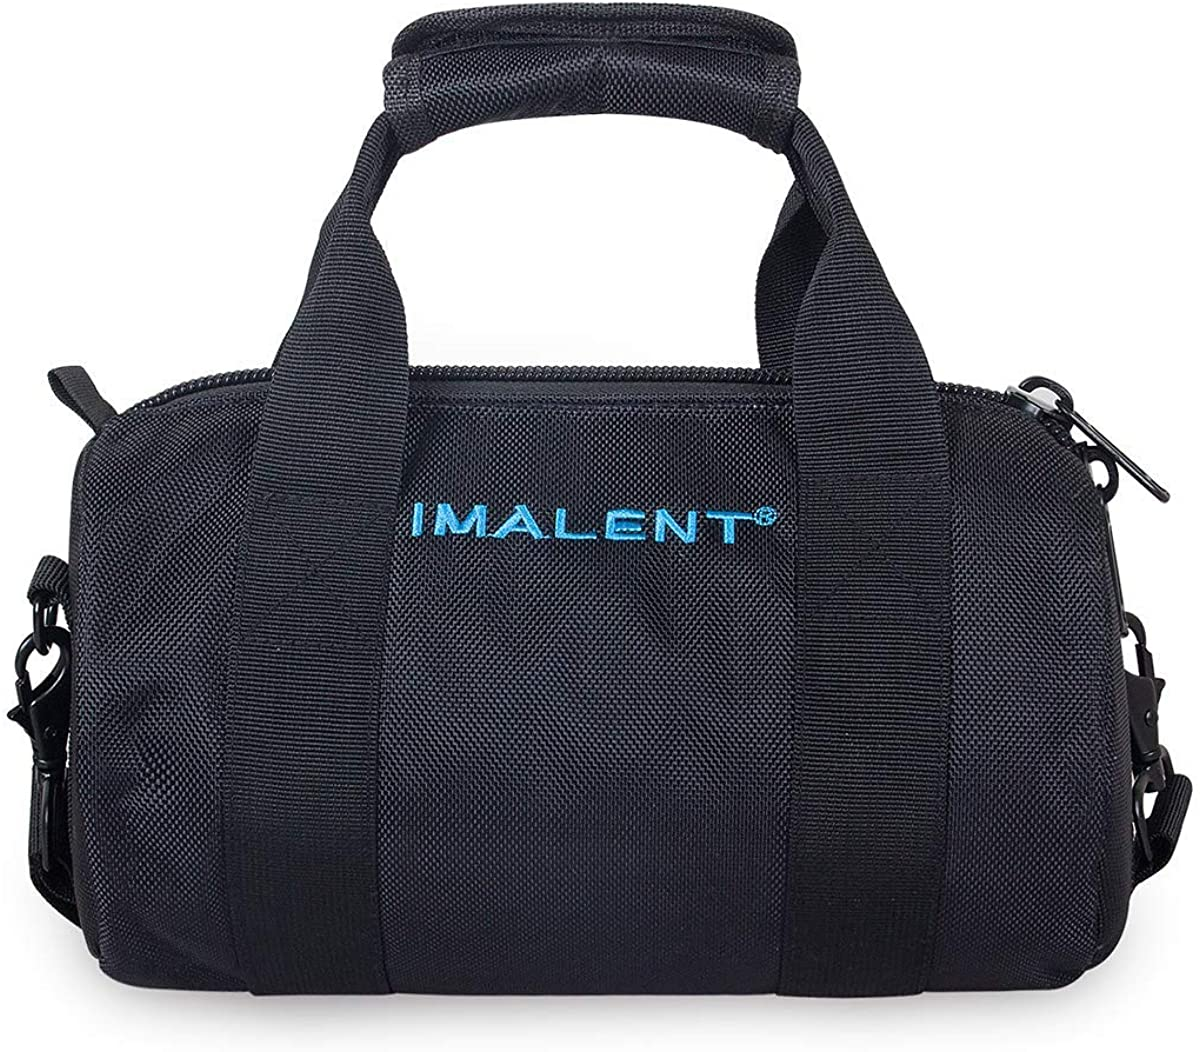 IMALENT MS12 Bag Outdoor Tactical Bags Utility Pouch, Waterproof Messenger Shoulder Bag EDC Pouch Carrying Case for DX80,R90C, MS18, R90TS and Electronic Product